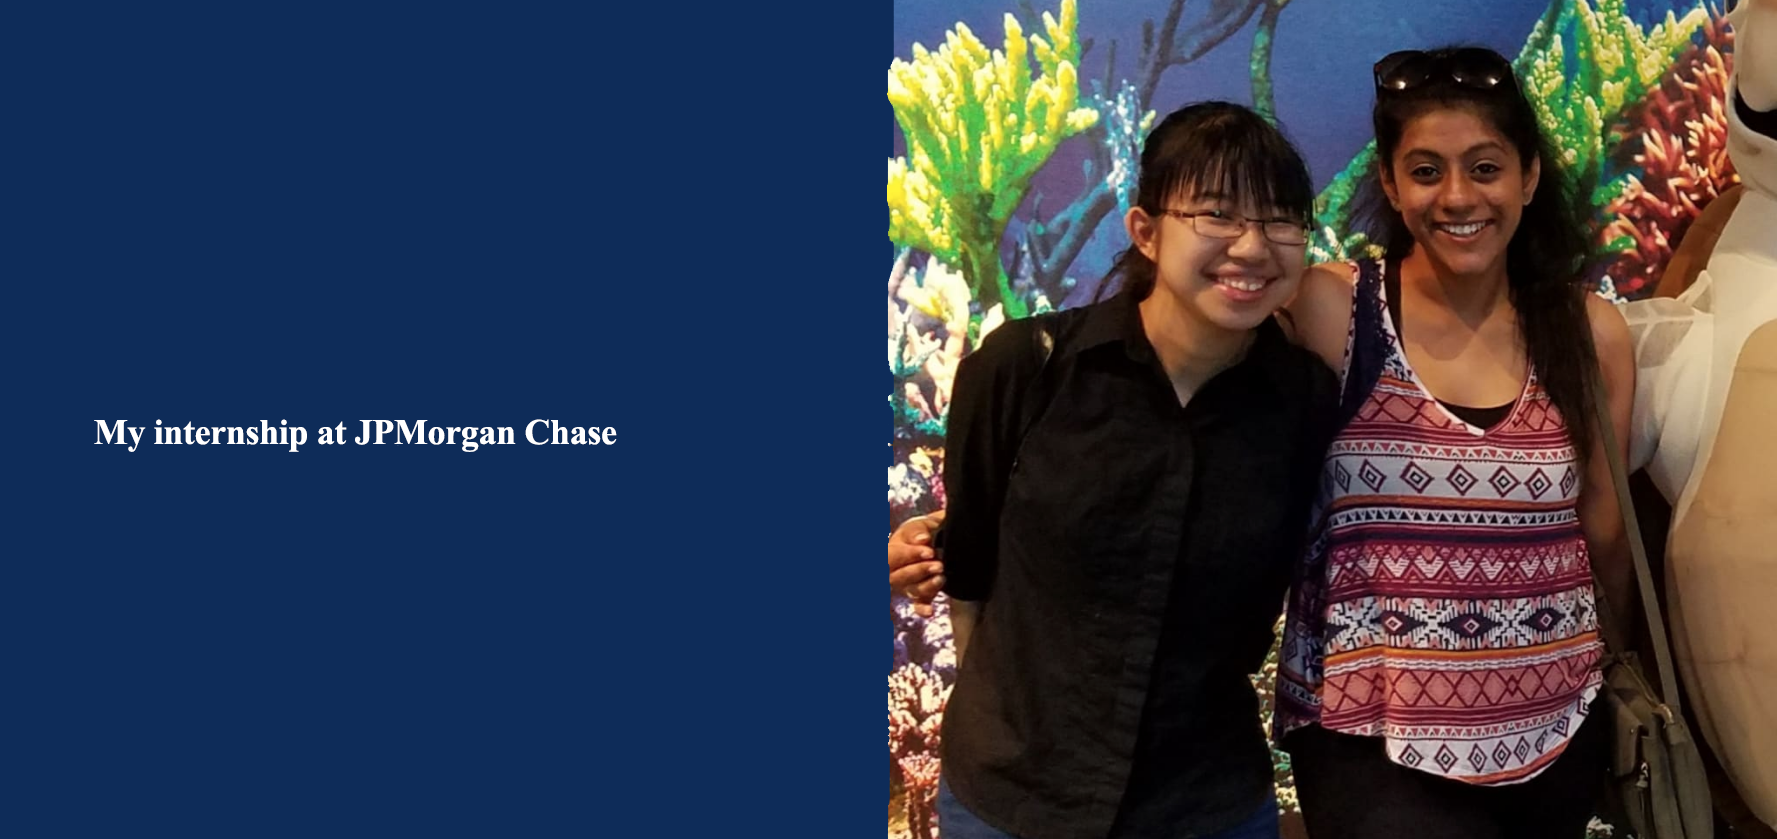 Image of Shanna Sit, a computer science major, with one of her team members at her internship at JPMorgan Chase